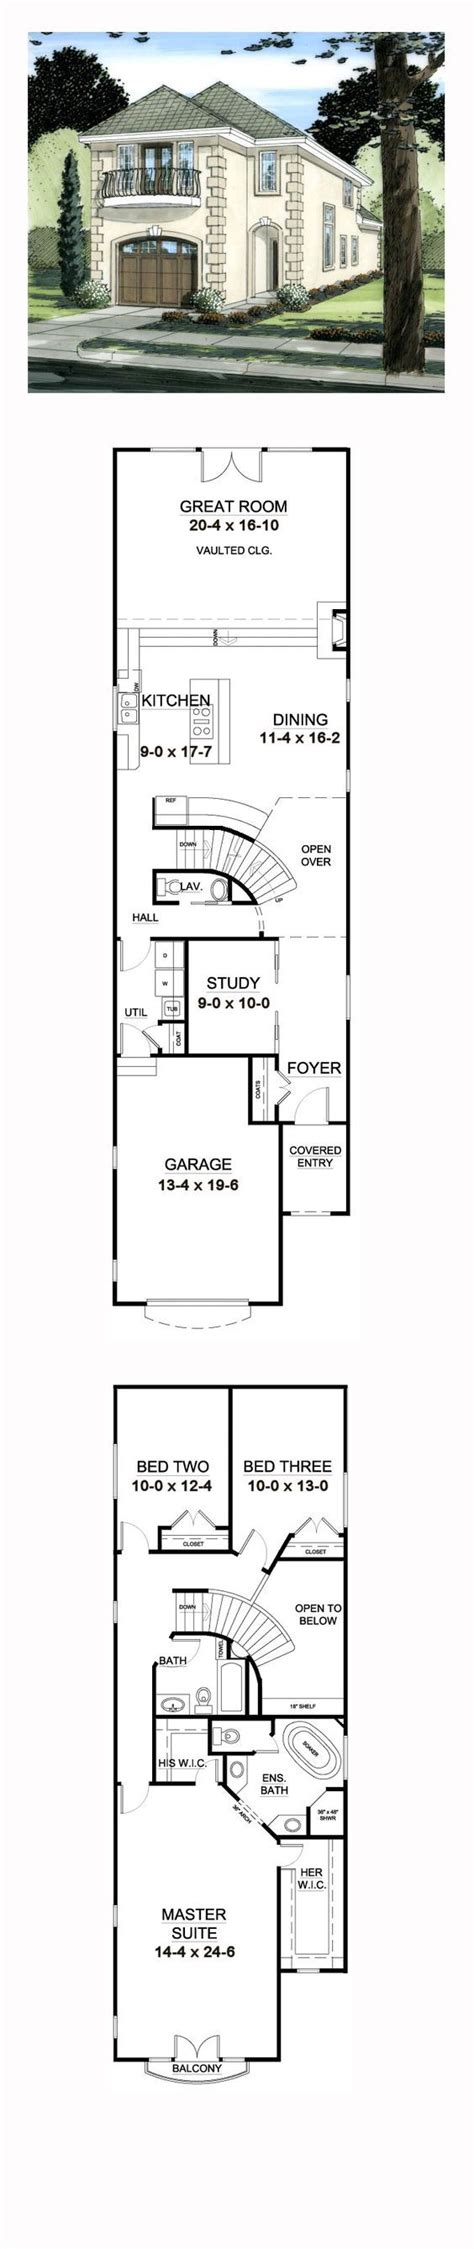 17 amazing house plans for narrow lots with front garage 17 best 1000 ideas about narrow house plans on pinterest